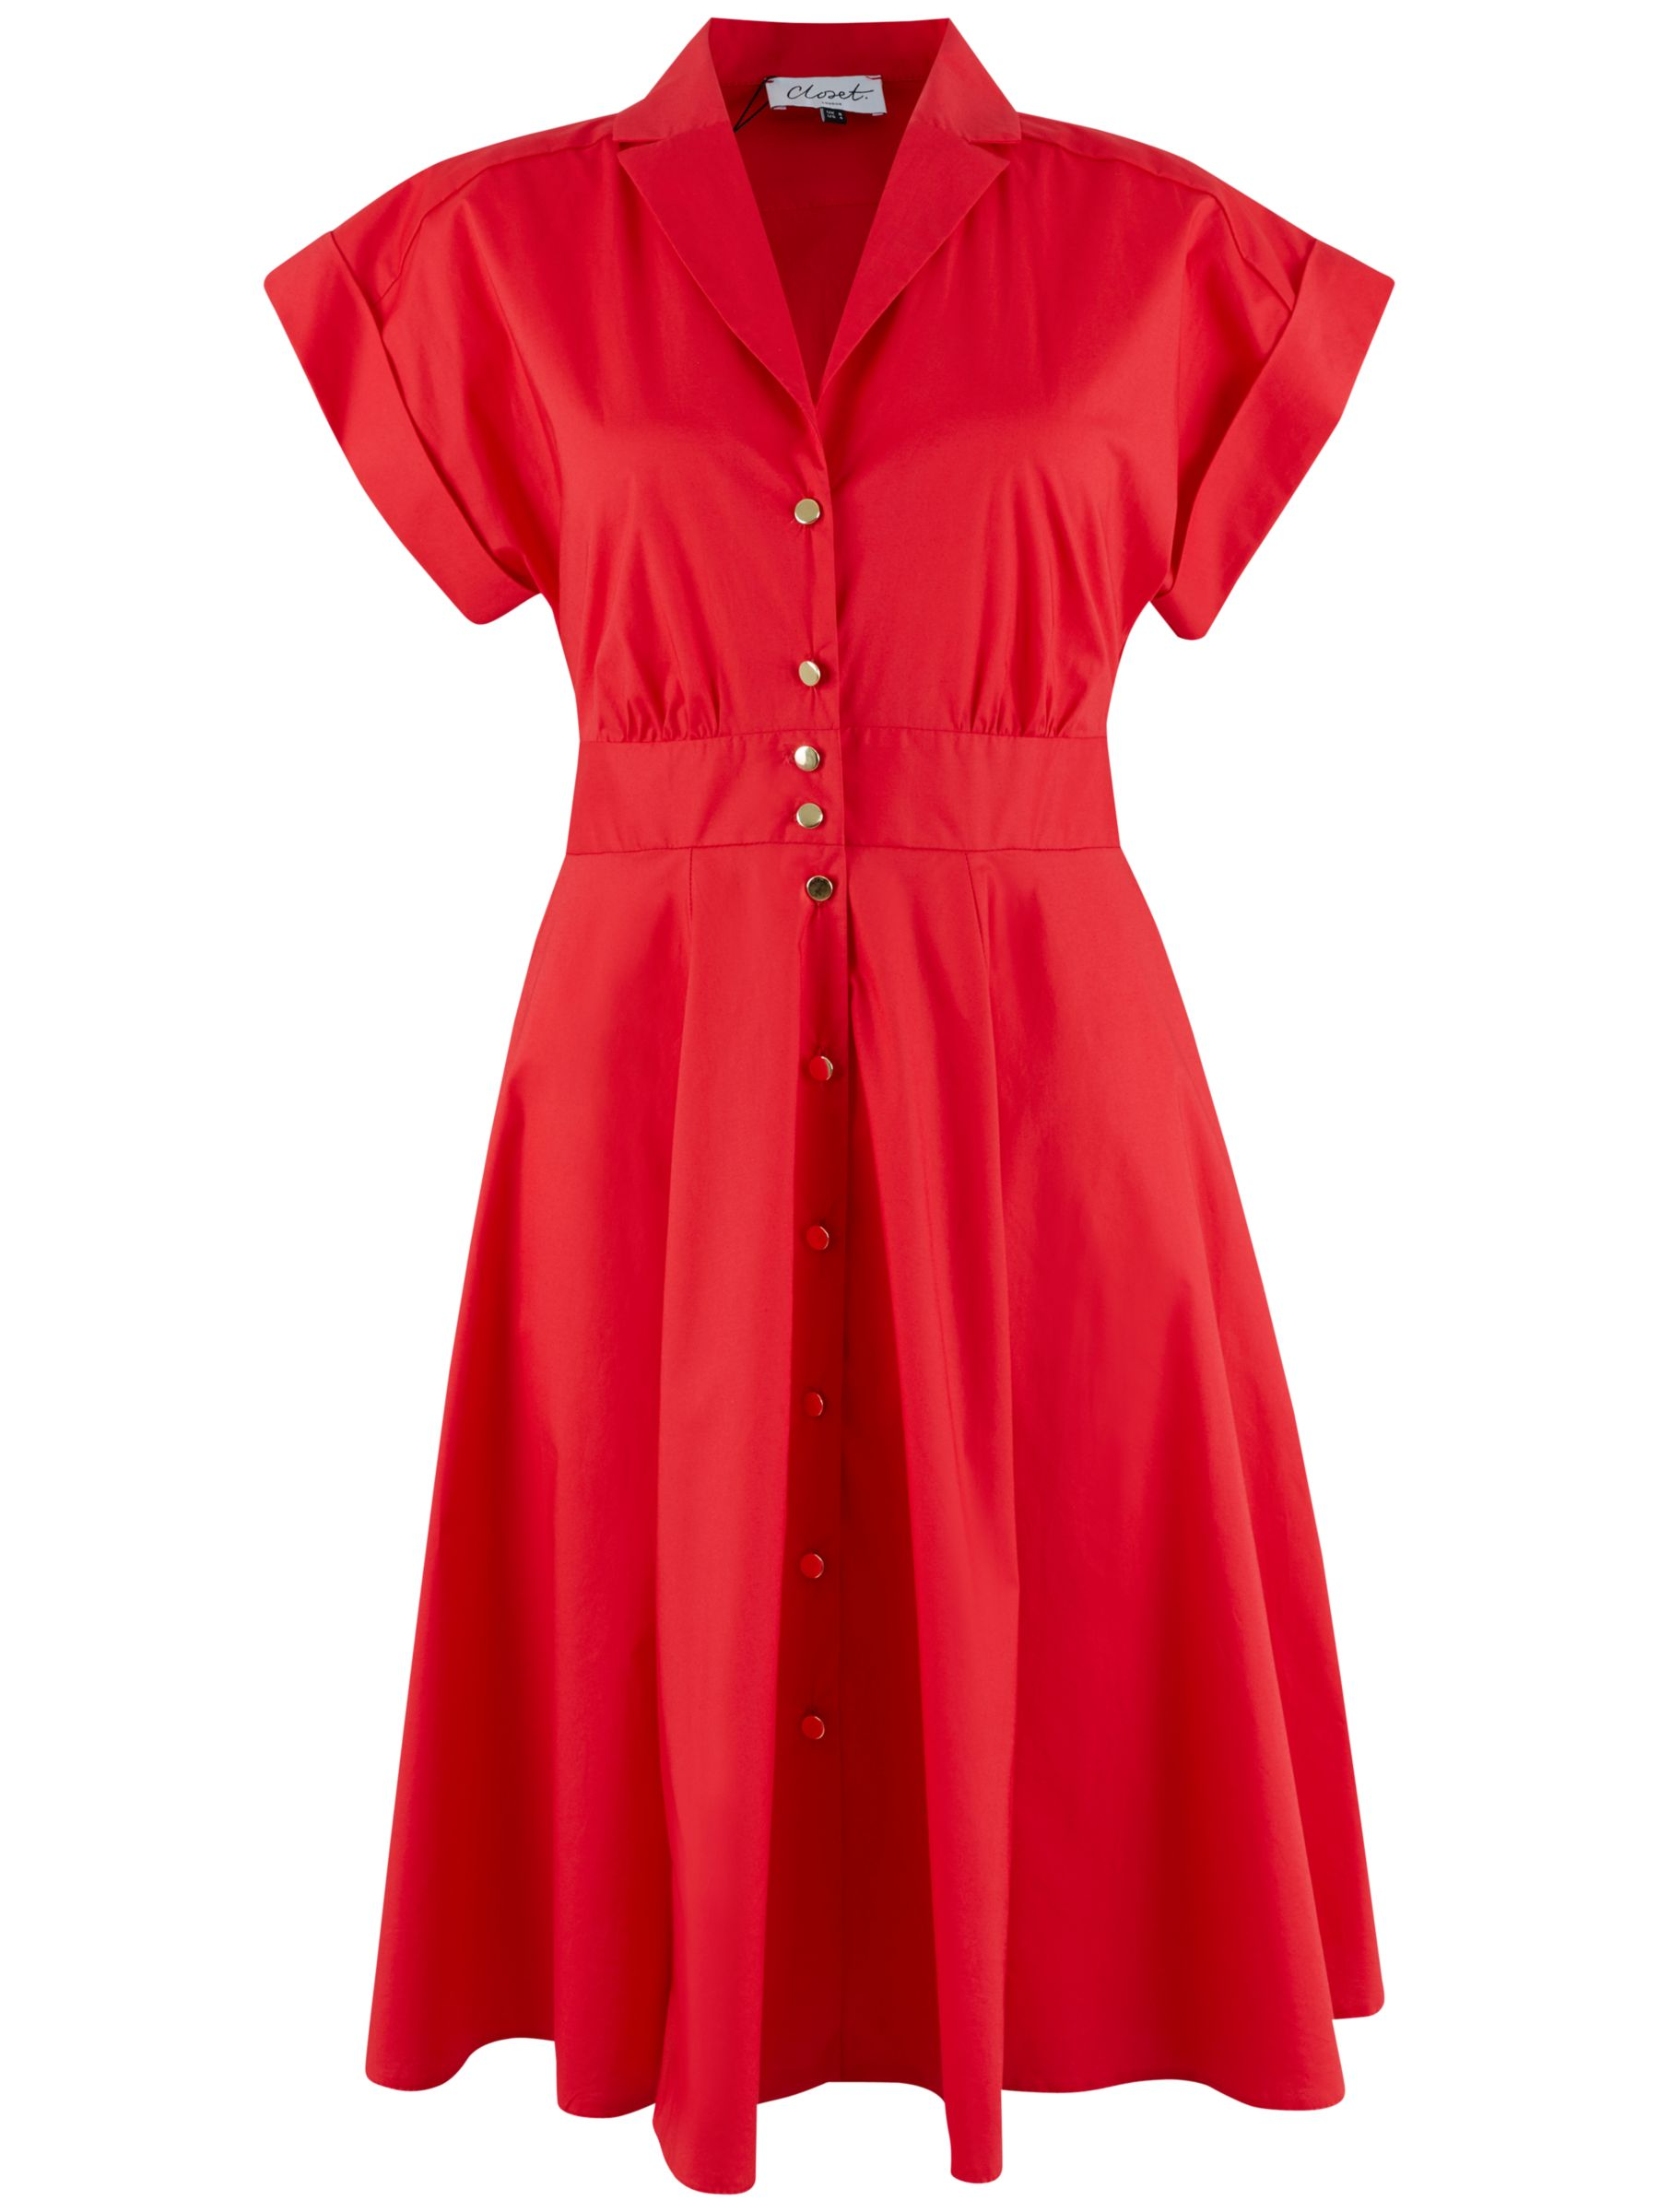 Closet Closet Collar Roll Dress, Red